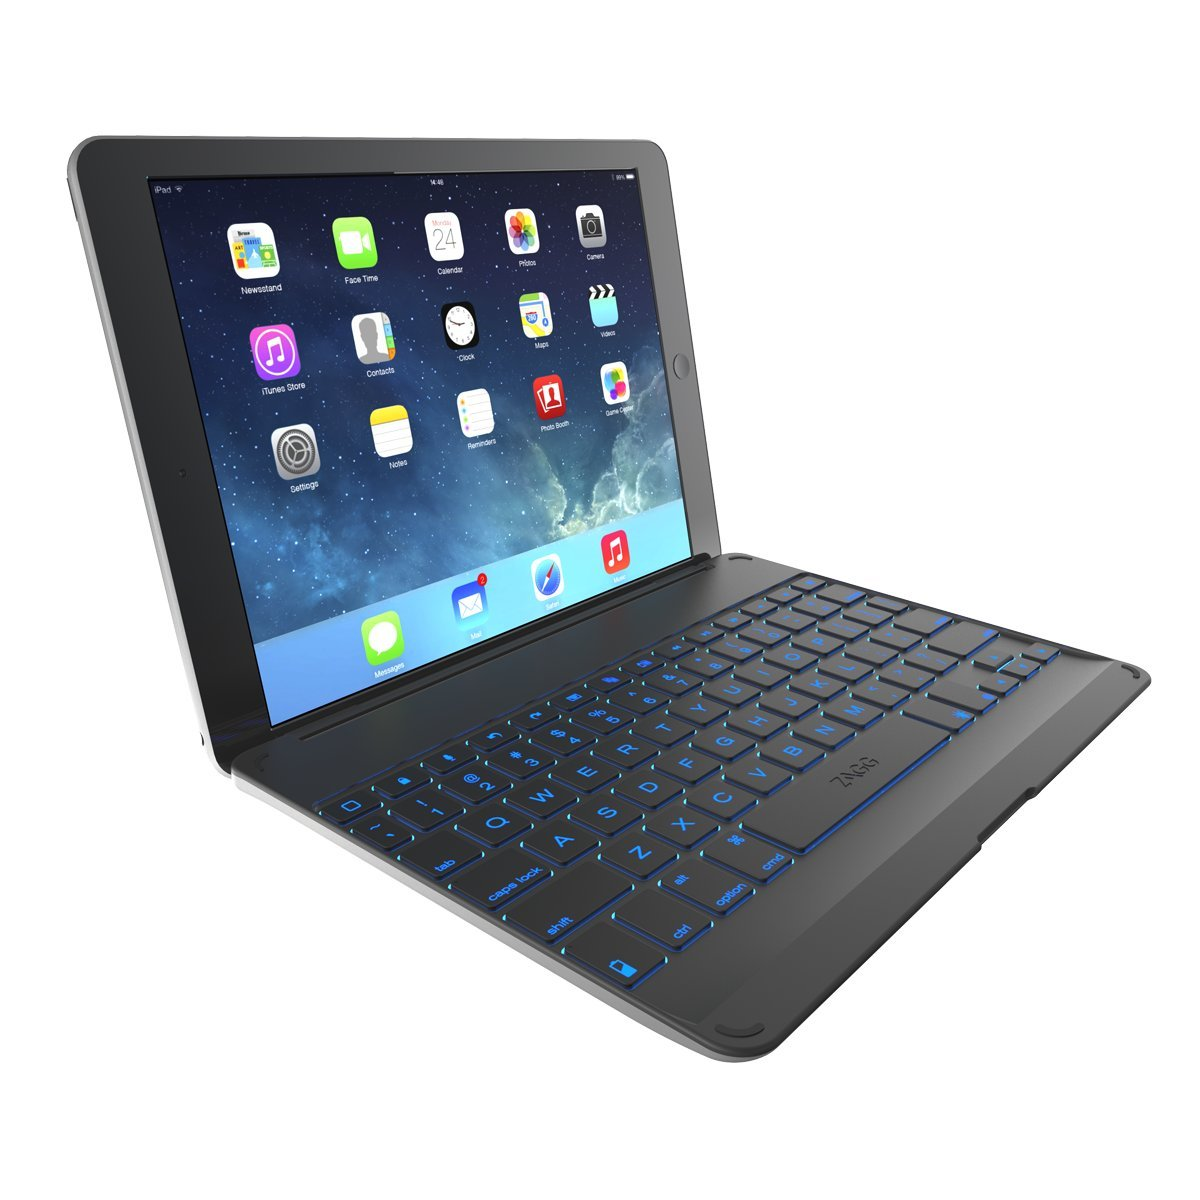 ZAGG Cover with Backlit, hinged, Bluetooth keyboard for iPad Air 1 - Black